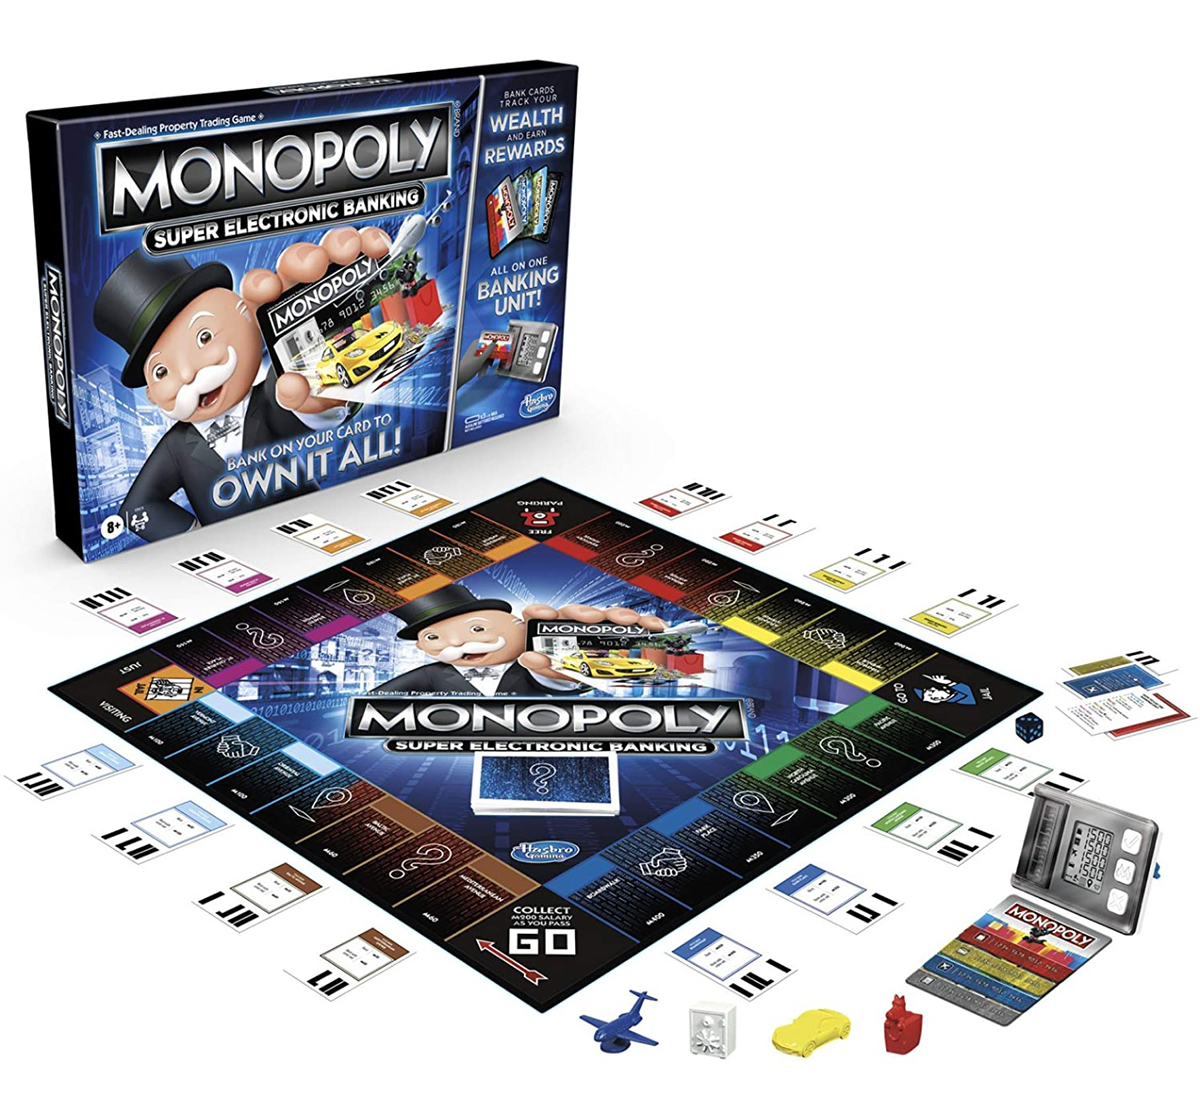 Hasbro Gaming | Hasbro Gaming Monopoly Super Electronic Banking Board Game, Electronic Banking Unit, Choose Your Rewards, Cashless Gameplay Tap Technology, for Ages 8 and Up